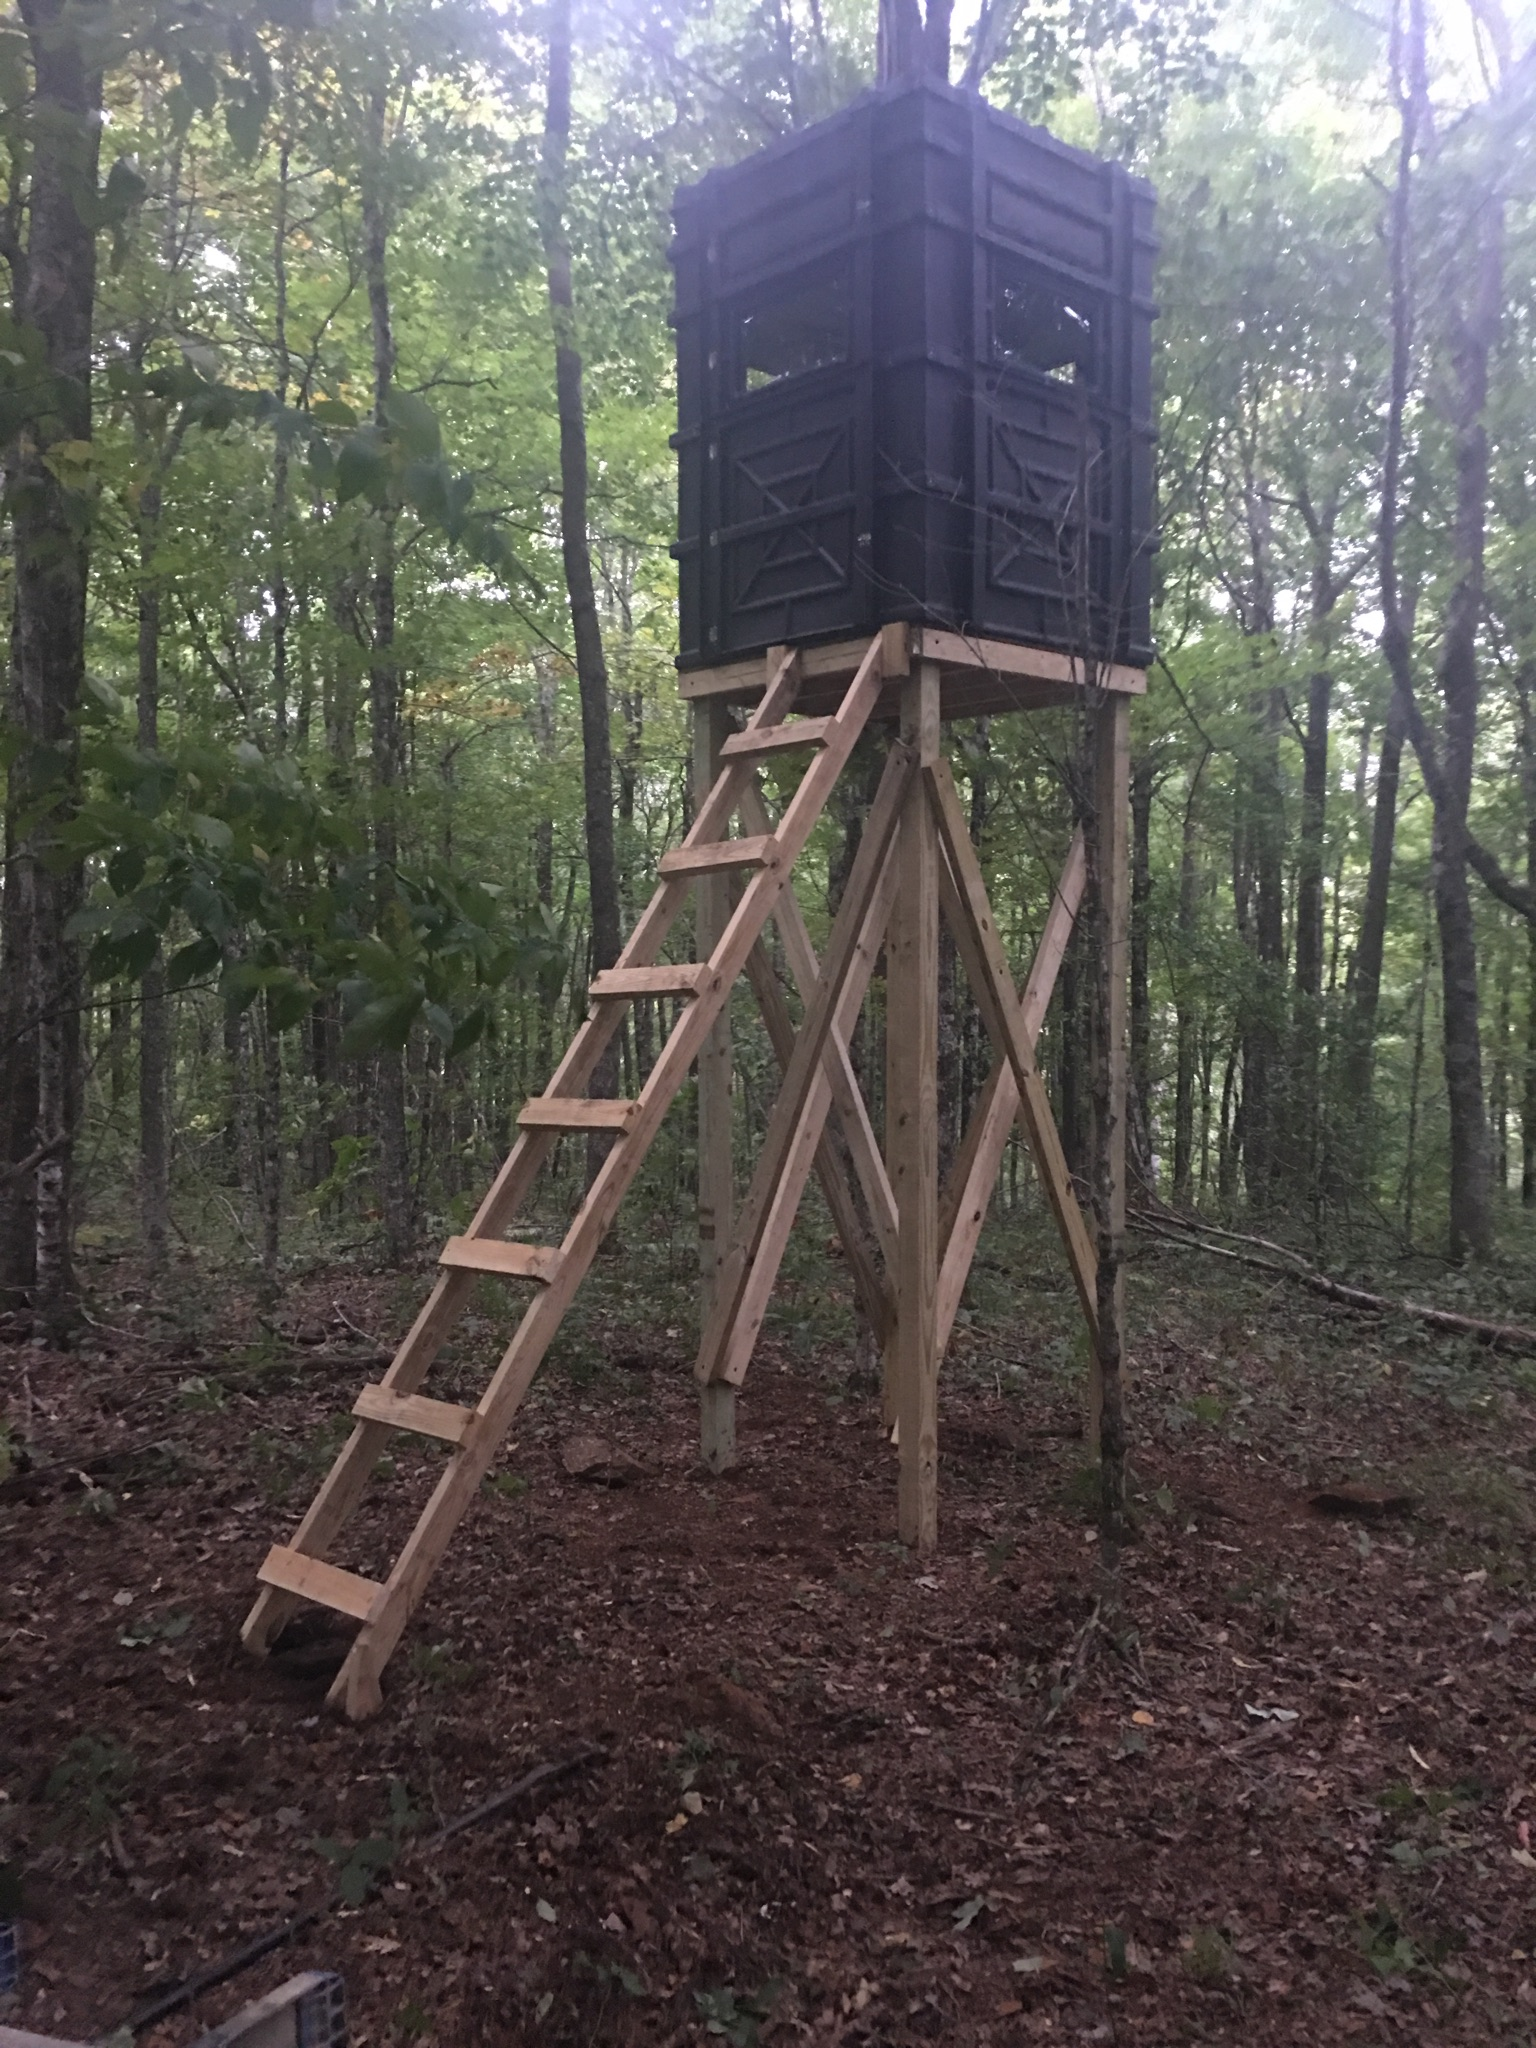 This is a great example of a dedicated customer using Hughes Products Box Blinds to build his own customized tower! - Ashley P. -